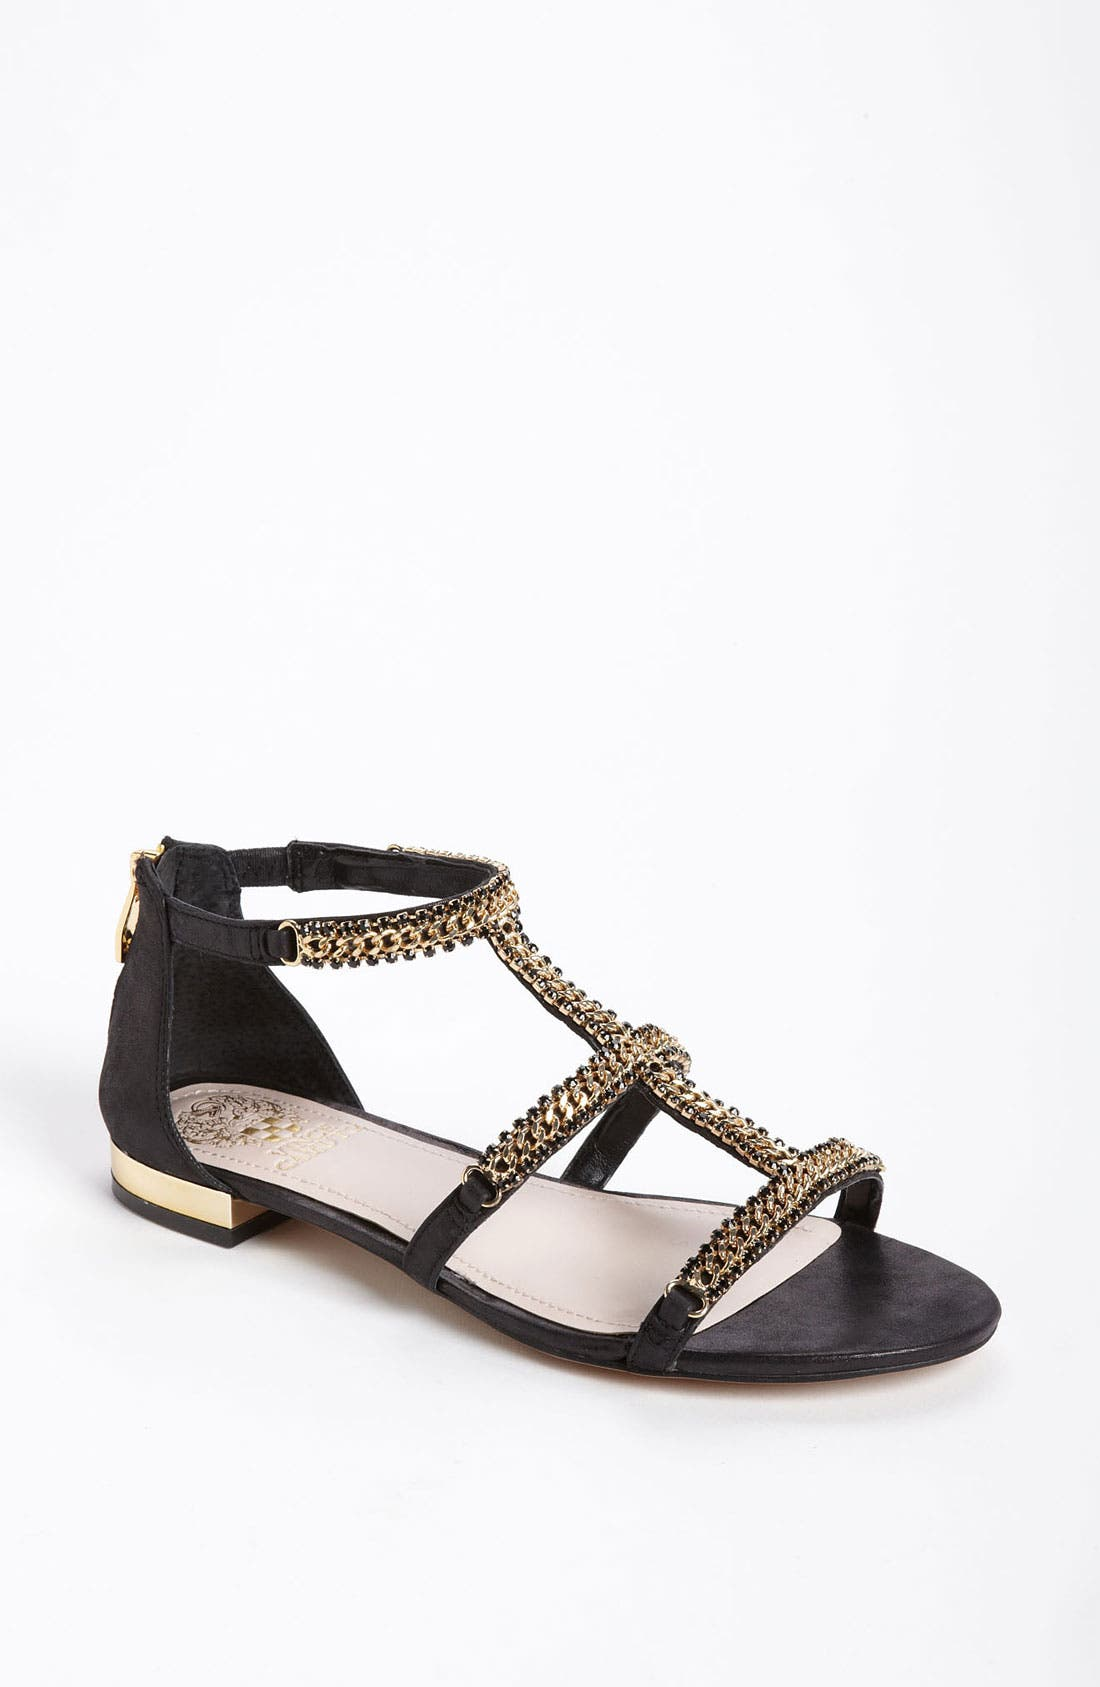 Main Image - Vince Camuto 'Hadie' Sandal (Online Only)